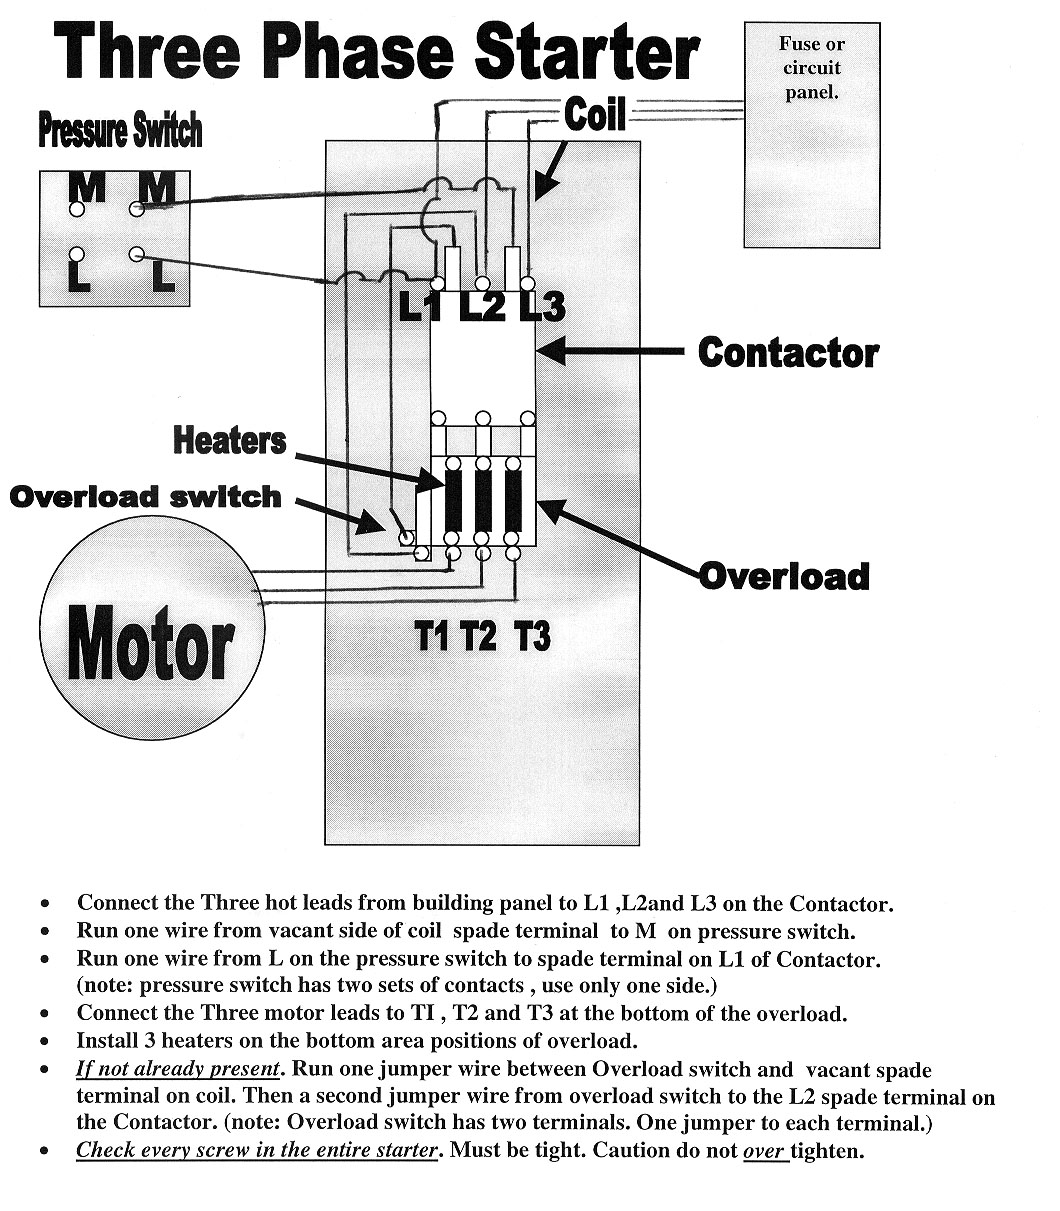 converter wiring diagram on 3 phase wire diagrams seiman wiring liry diagram h7 on floating wall construction diagram  [ 1060 x 1211 Pixel ]